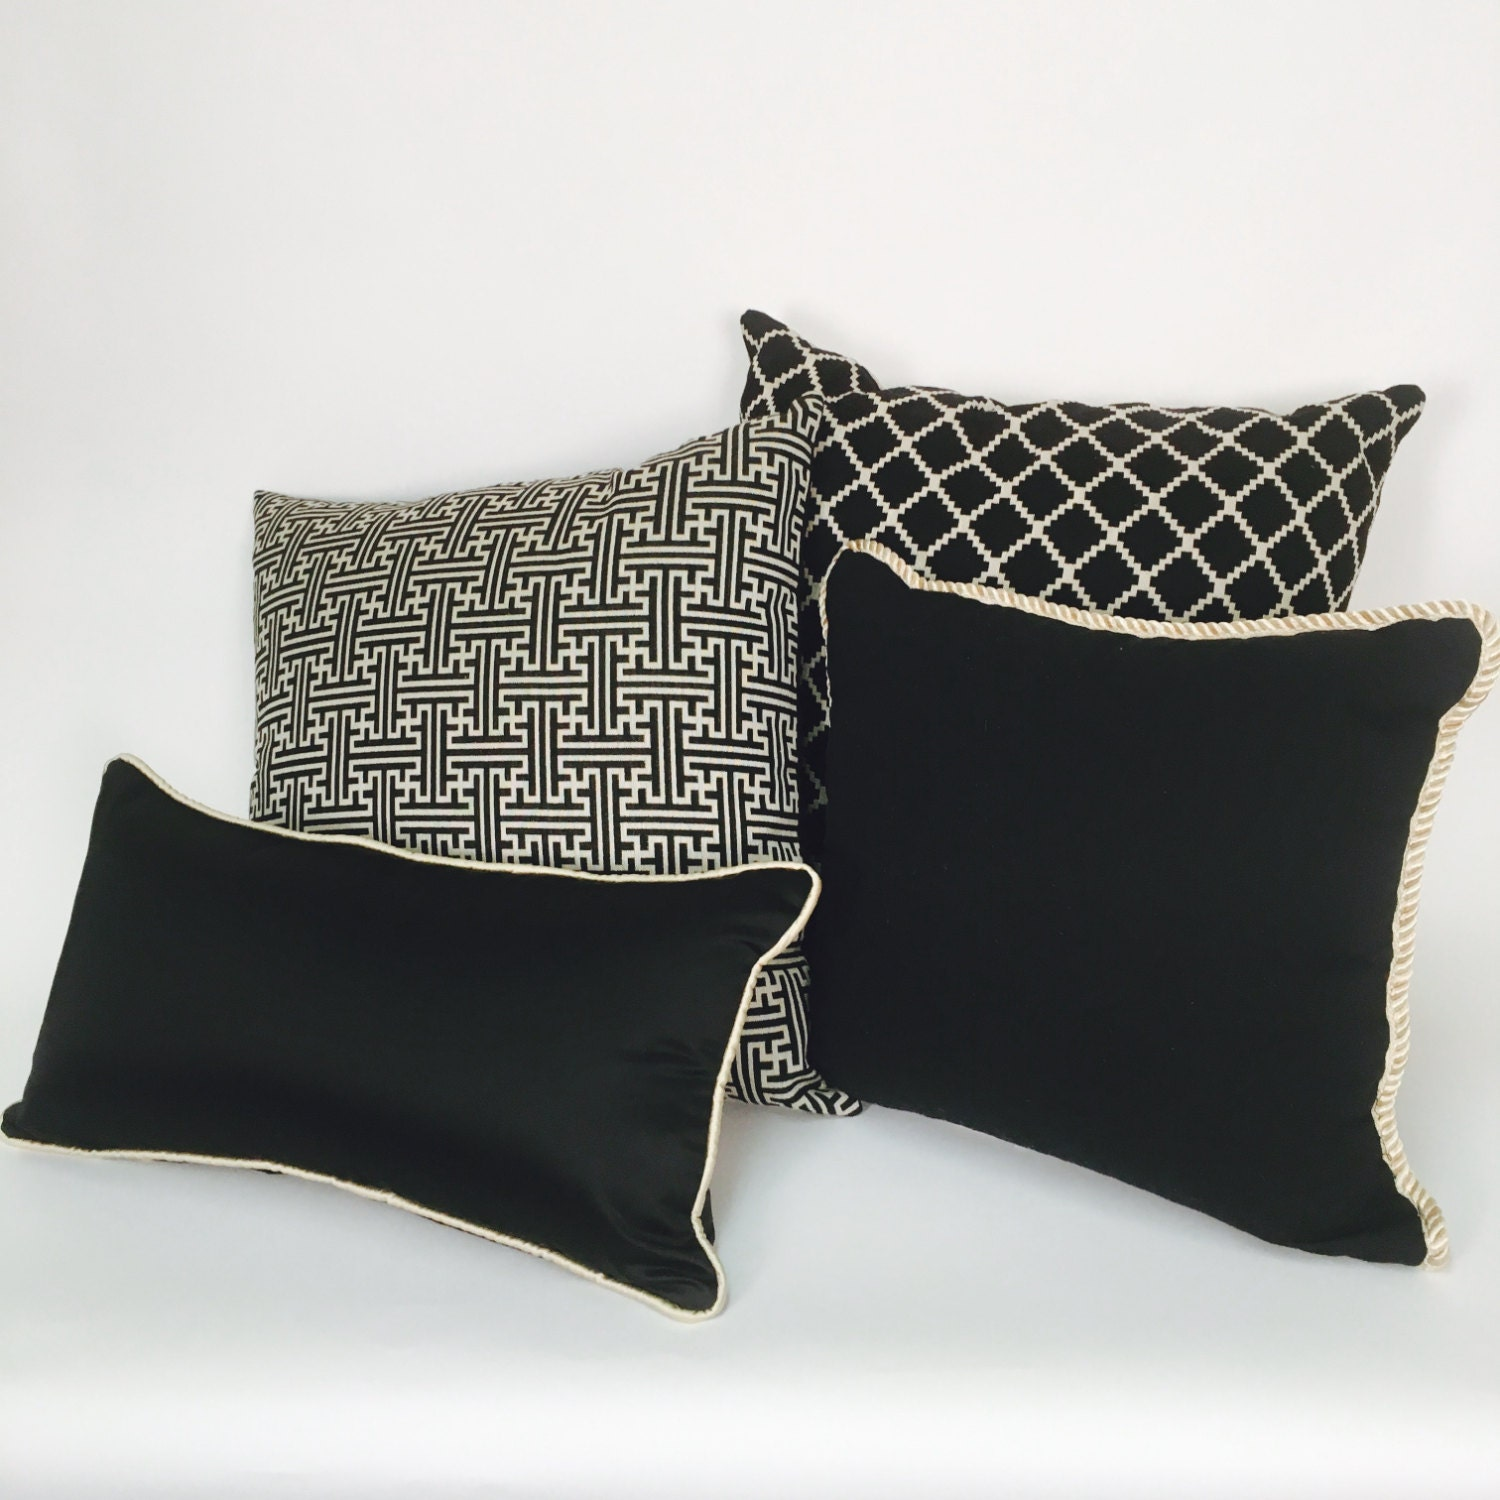 Hypoallergenic Throw Pillow Covers : Decorative Black Pillow Covers with Linen Color Background